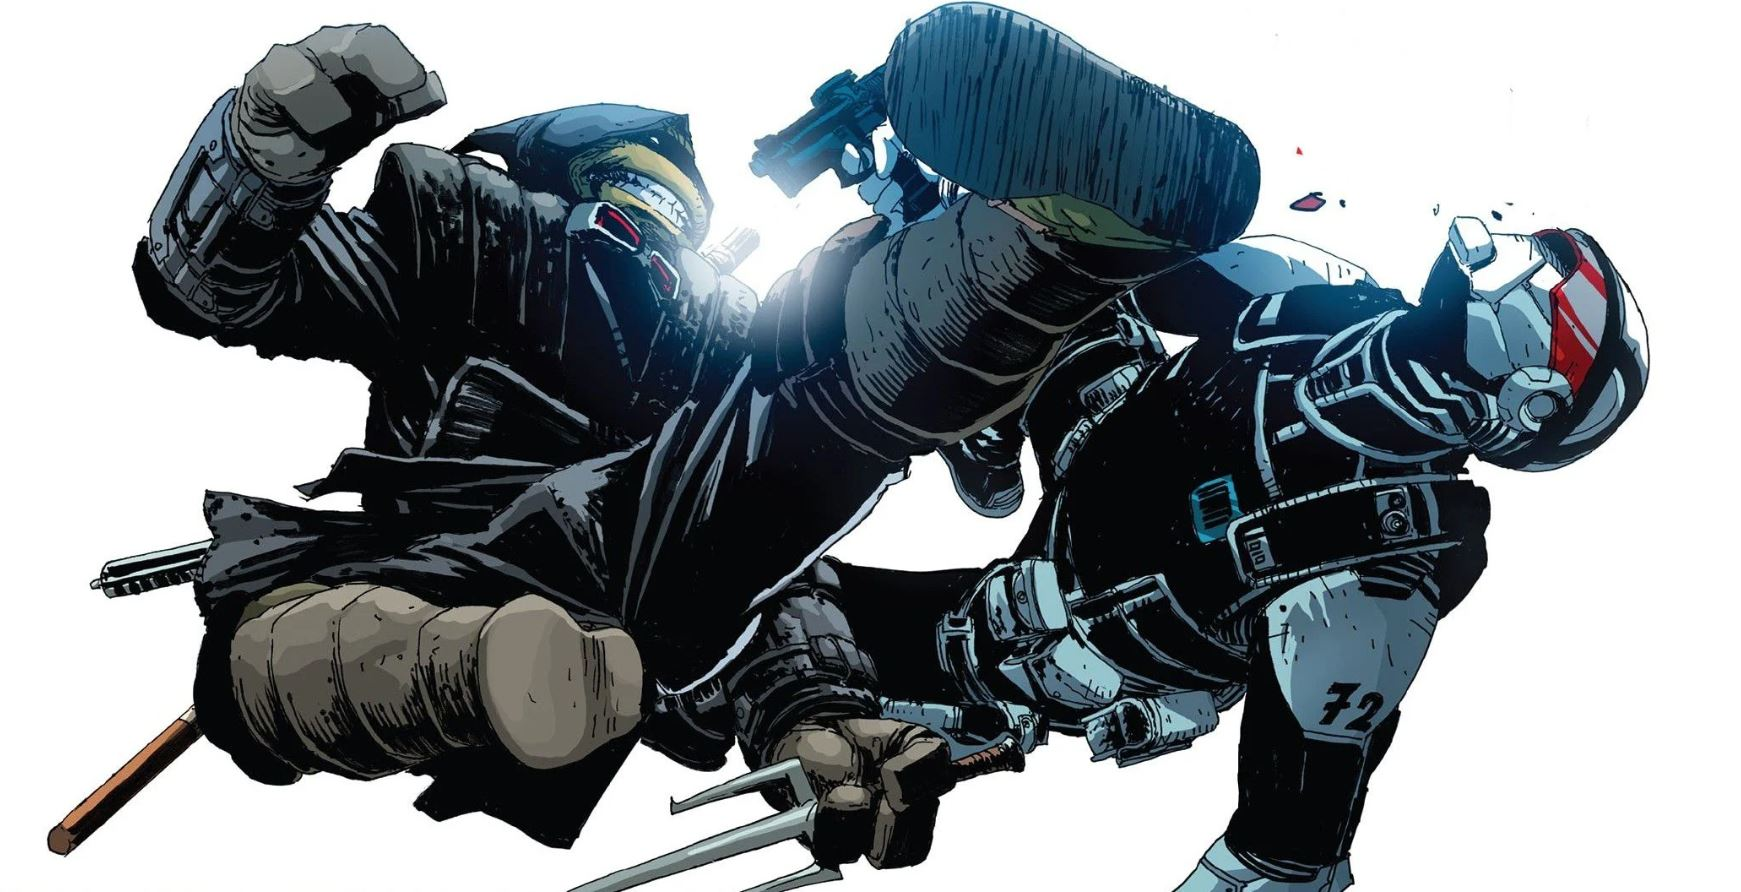 TMNT: The Last Ronin #2 Release Date & Preview